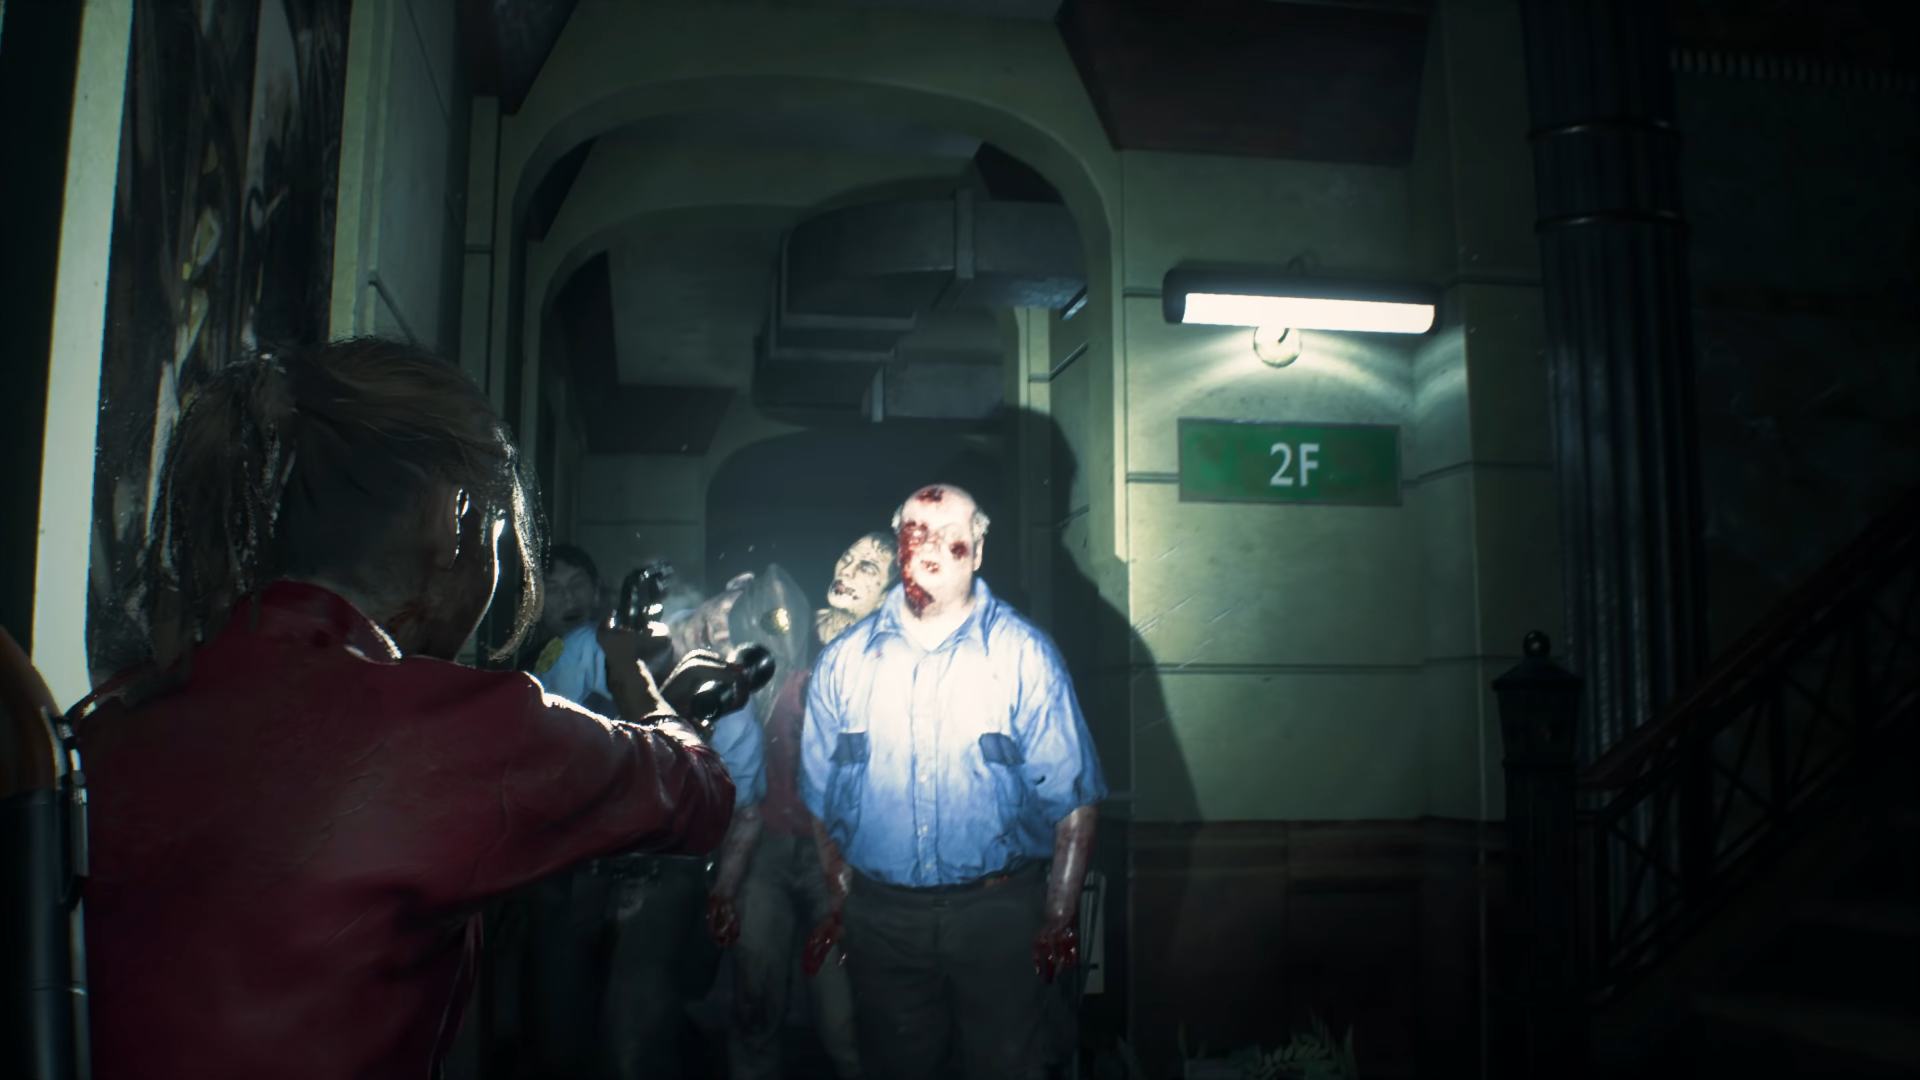 resident evil 2 gets story trailer first look at ada wong